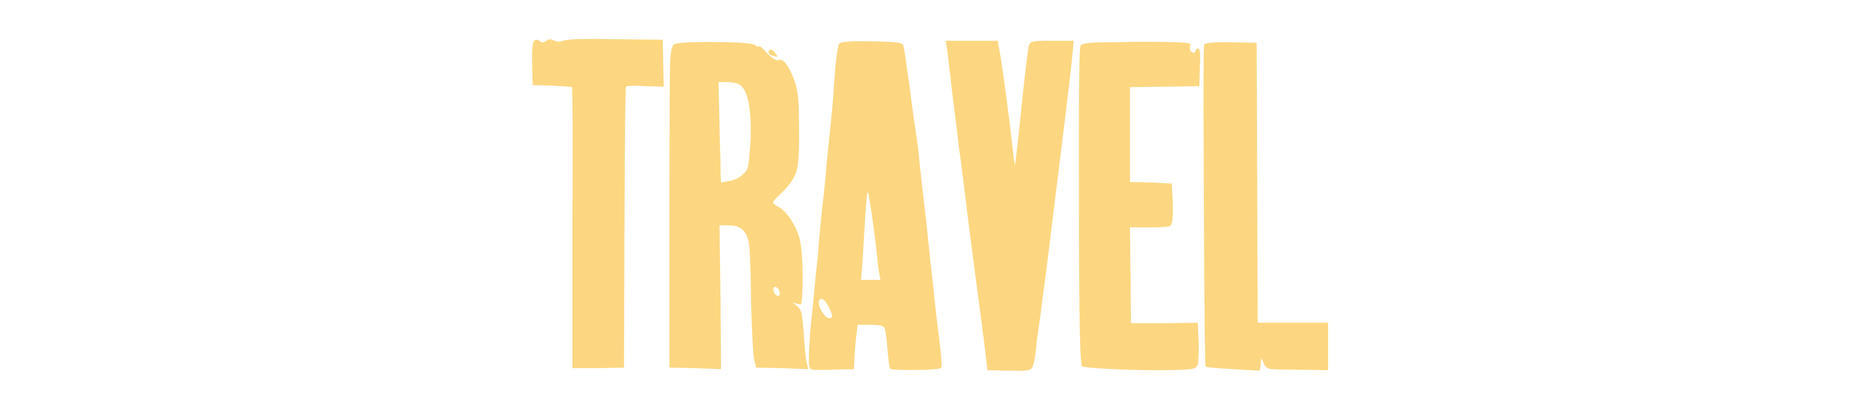 TRAVEL_OPAQUE.png